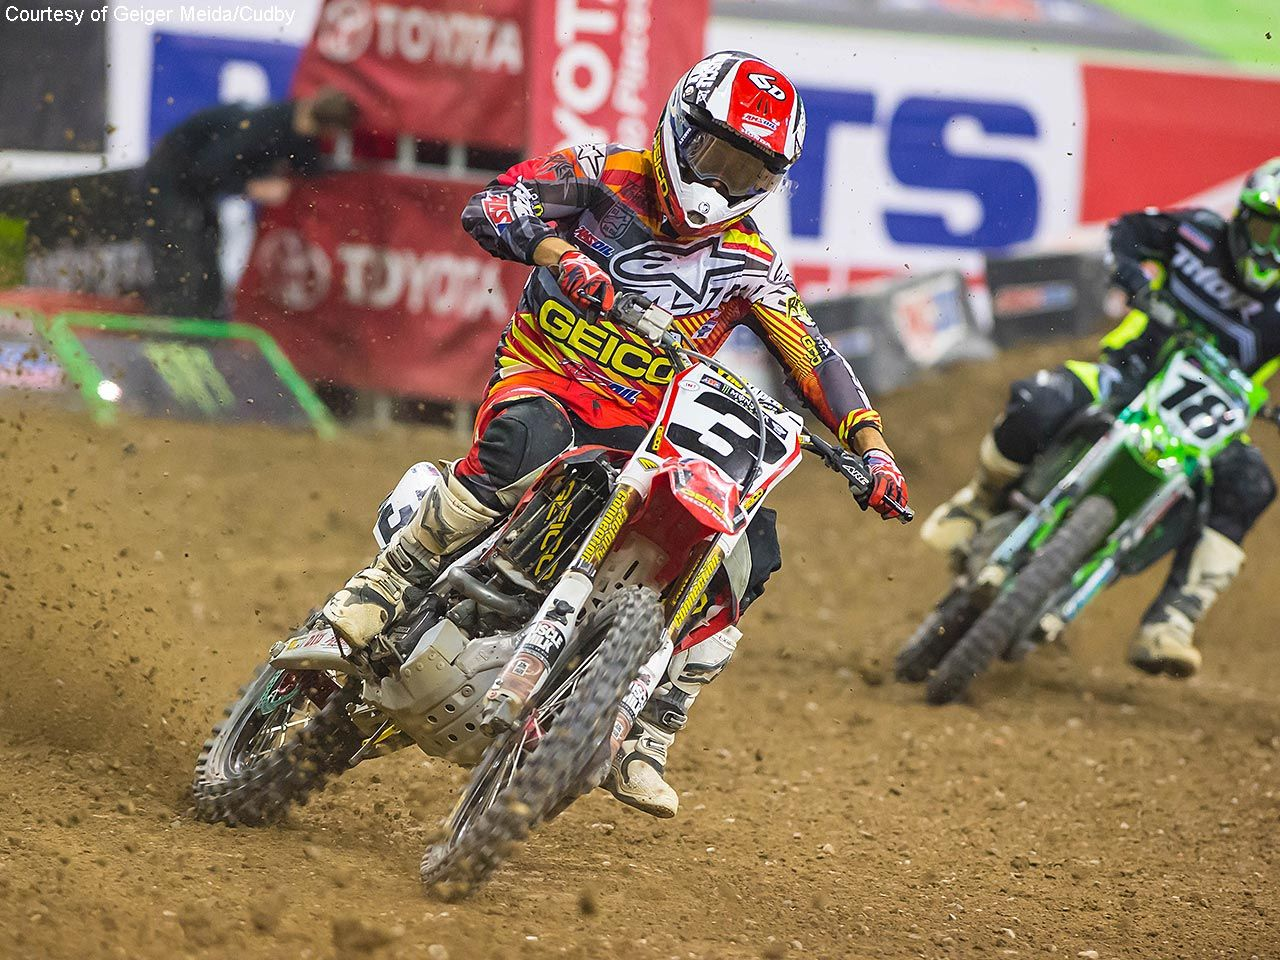 2015 Supercross Round 13 in St. Louis - DualSport and Offroad - Motorcycle Sport Forum